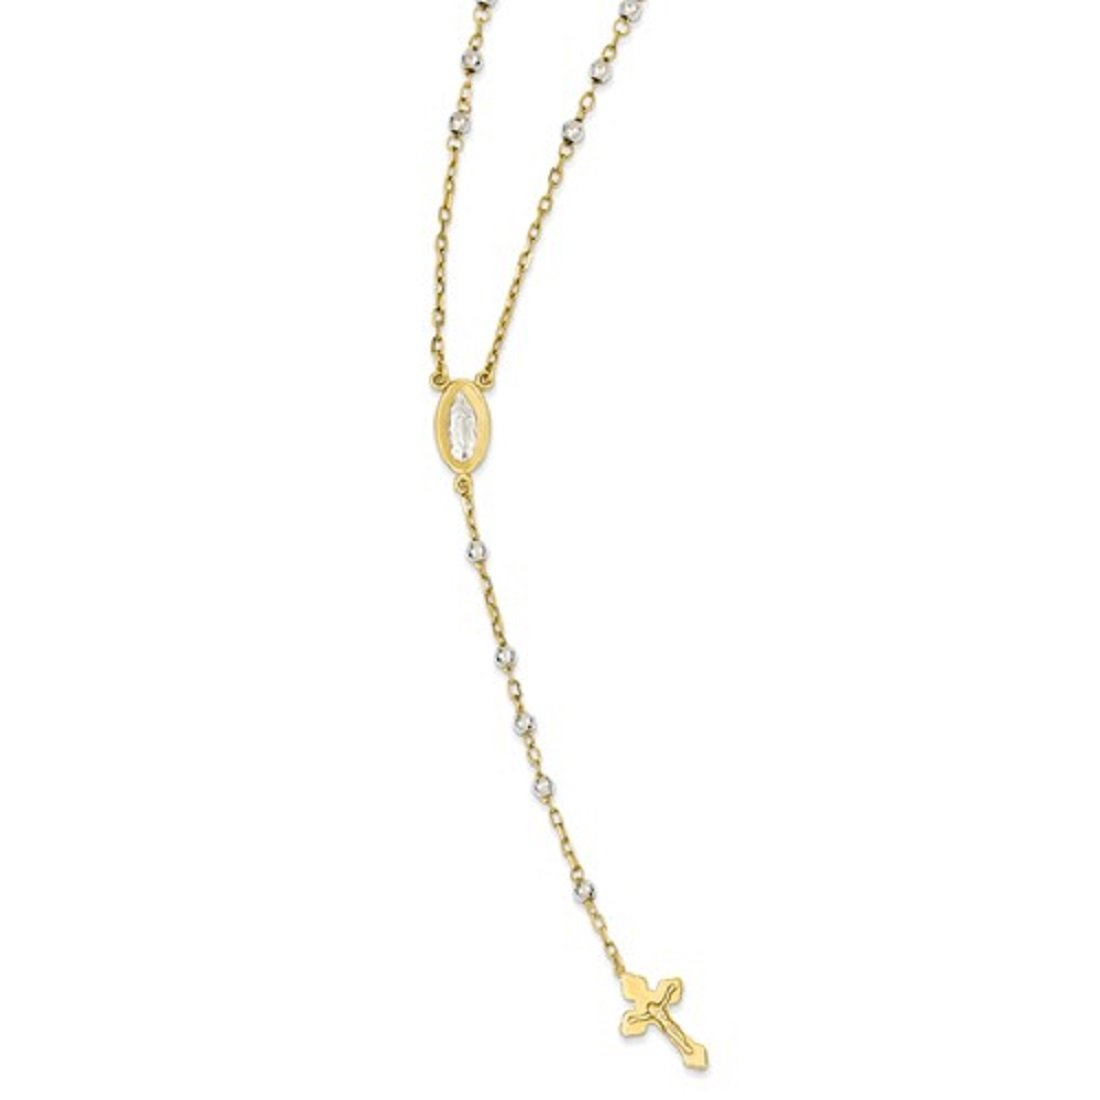 Roxx Fine Jewelry Two Tone 14K Gold Ornate Miraculous Medal Rosary 16'' Necklace 4.00mm Beads in 14K Yellow and White Gold